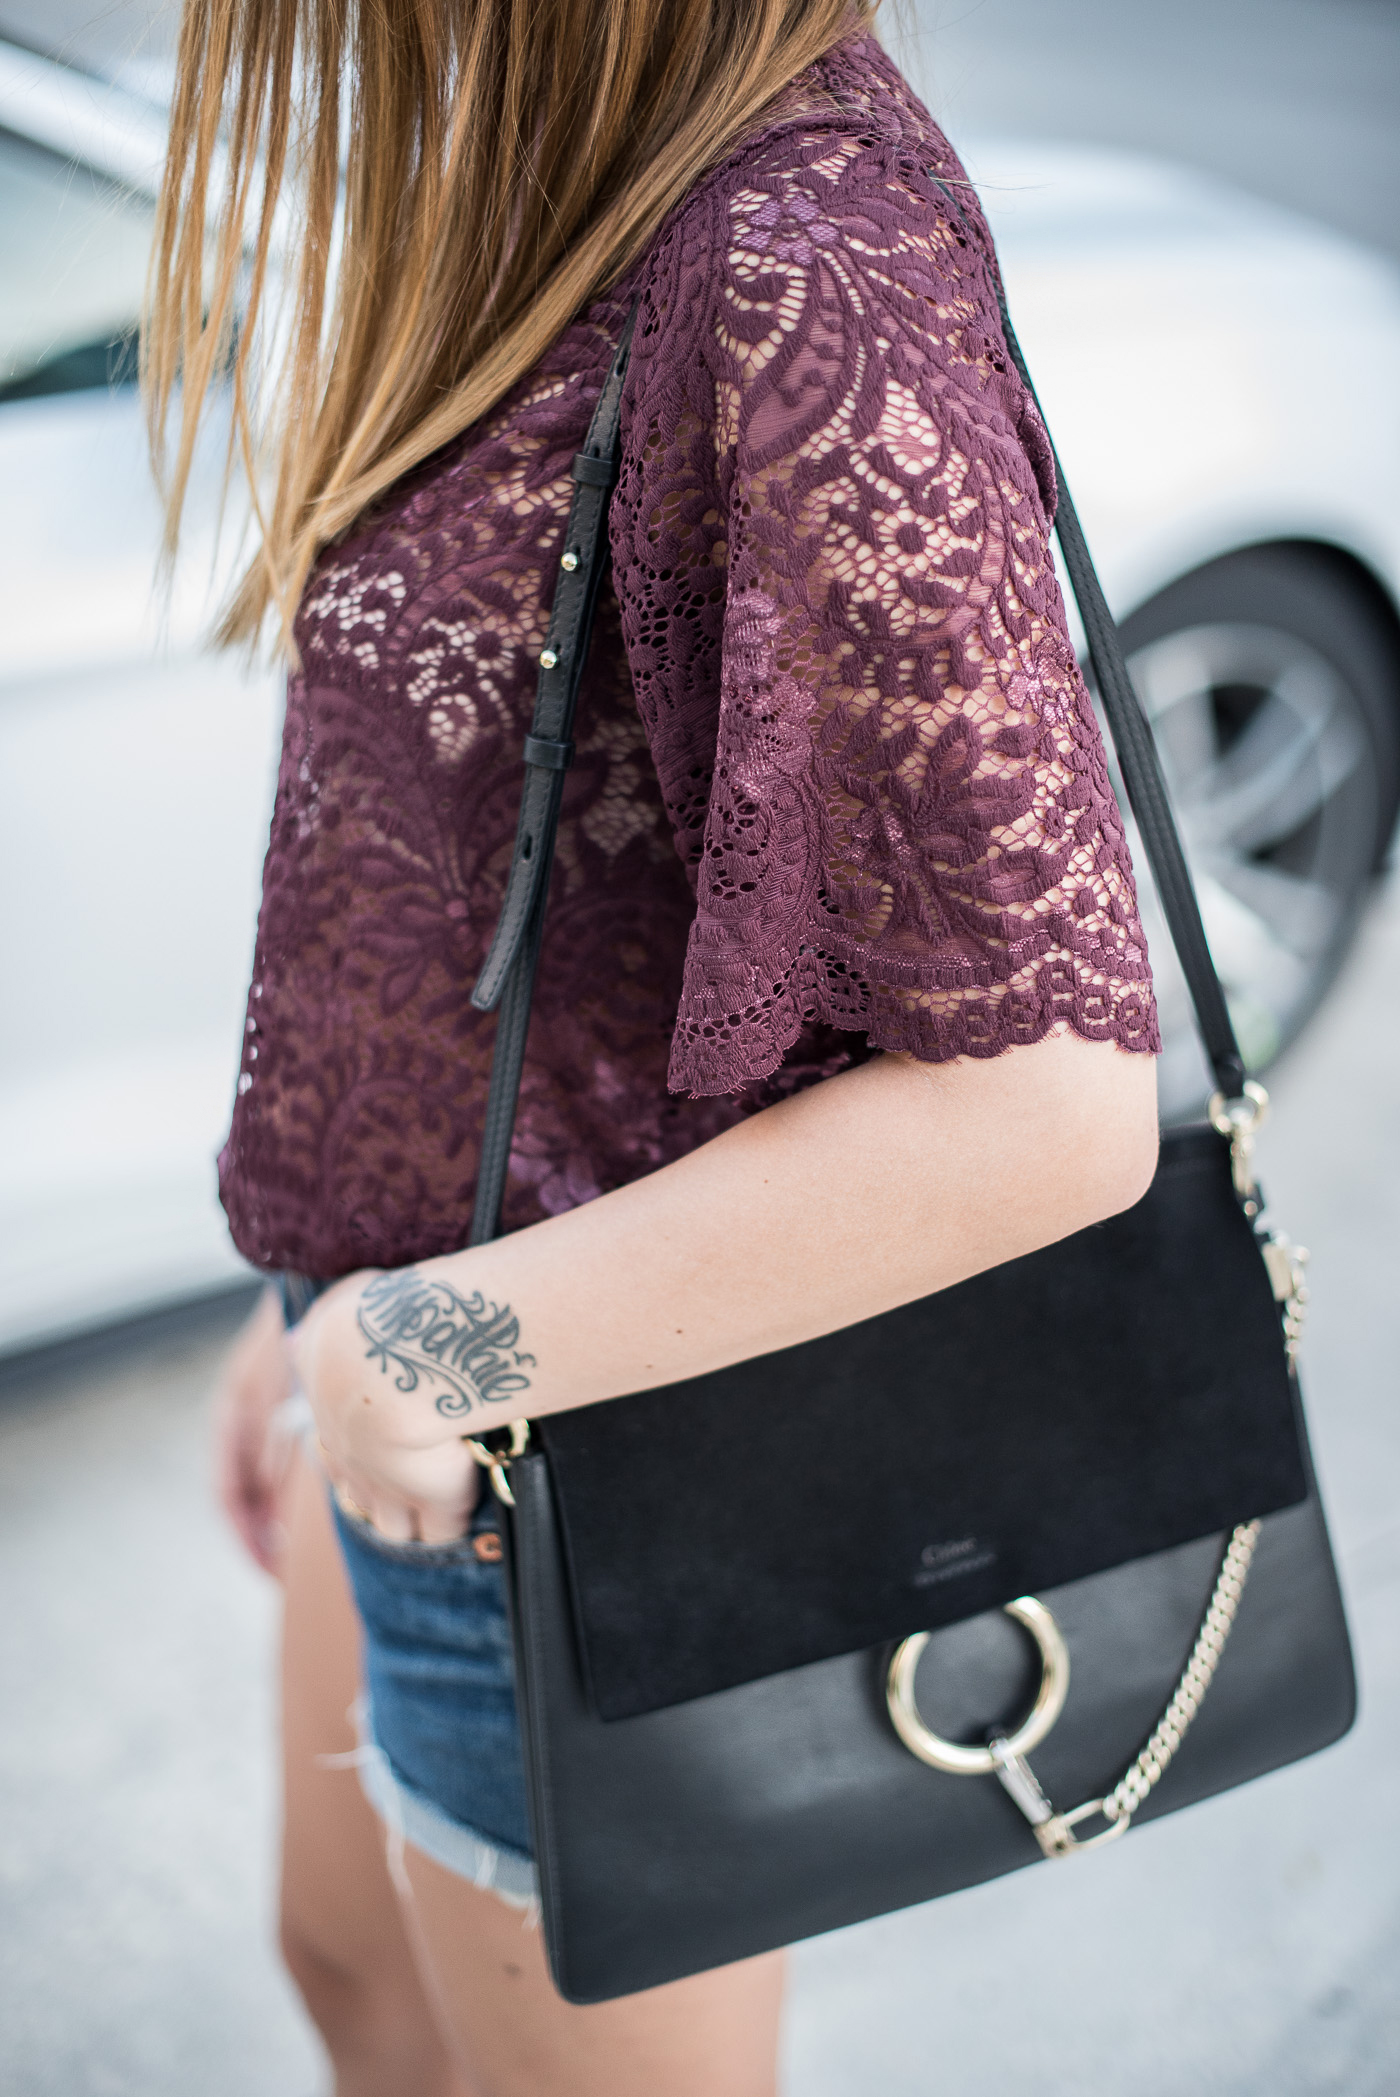 florida_dinner_outfit_lace_top_7